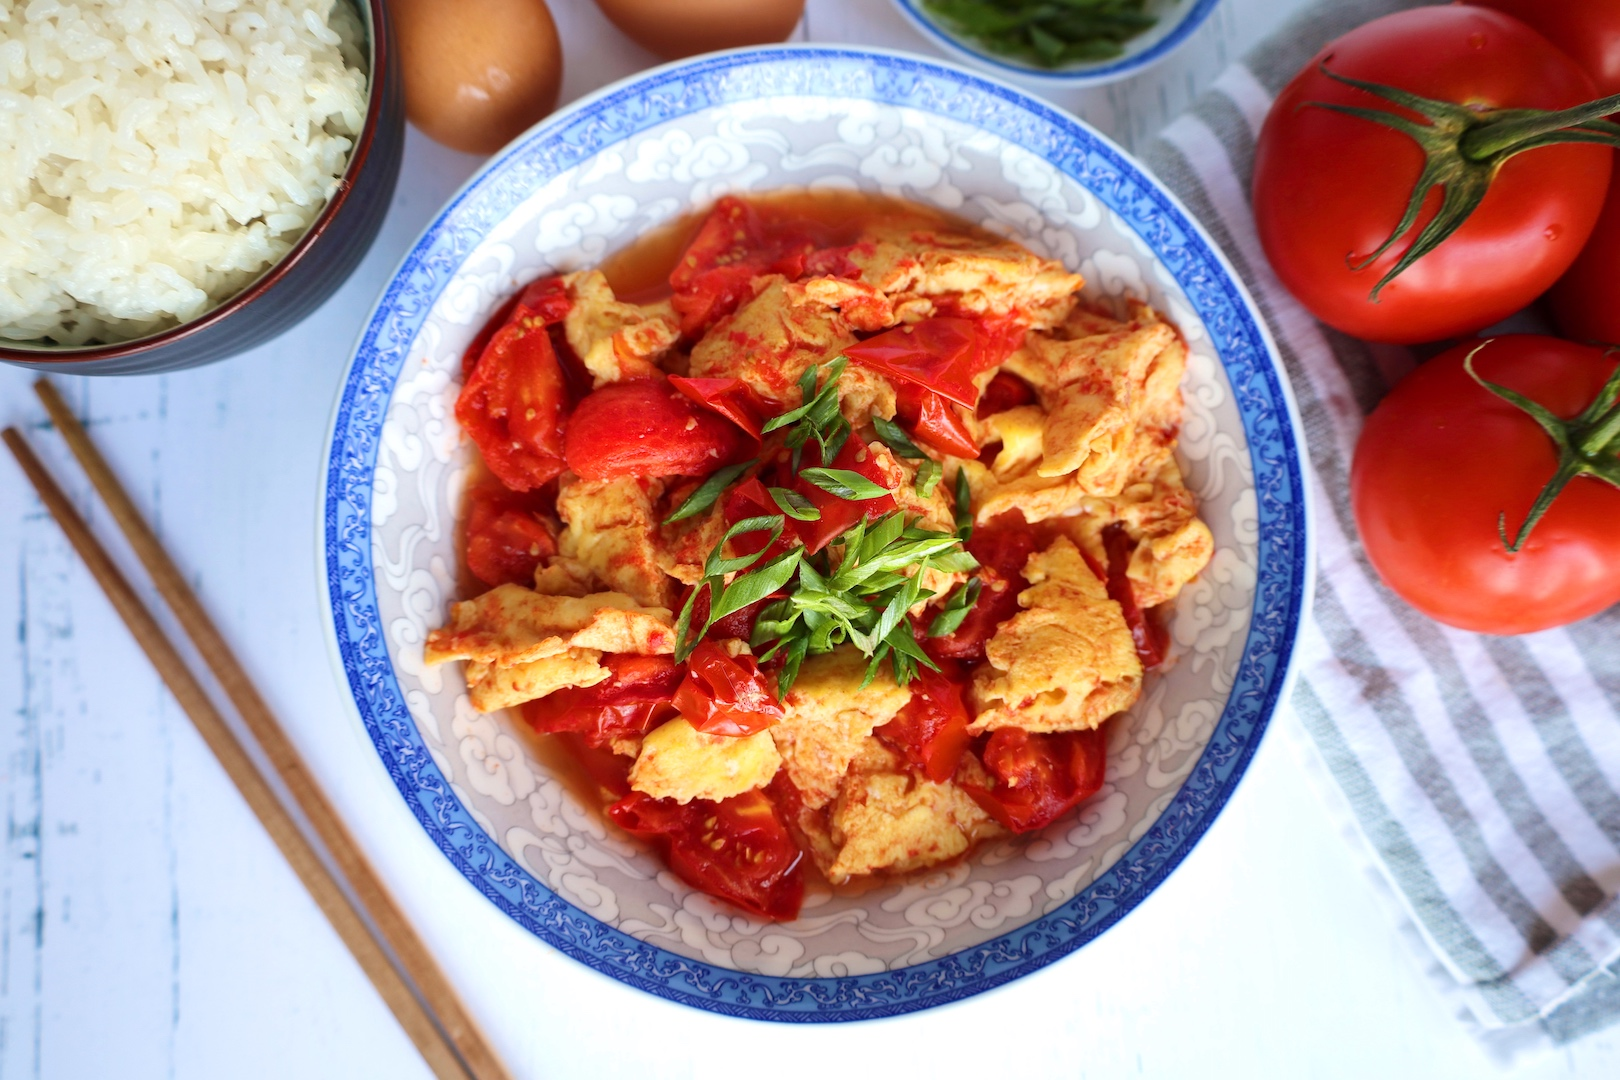 Chinese Egg and Tomato Stir Fry